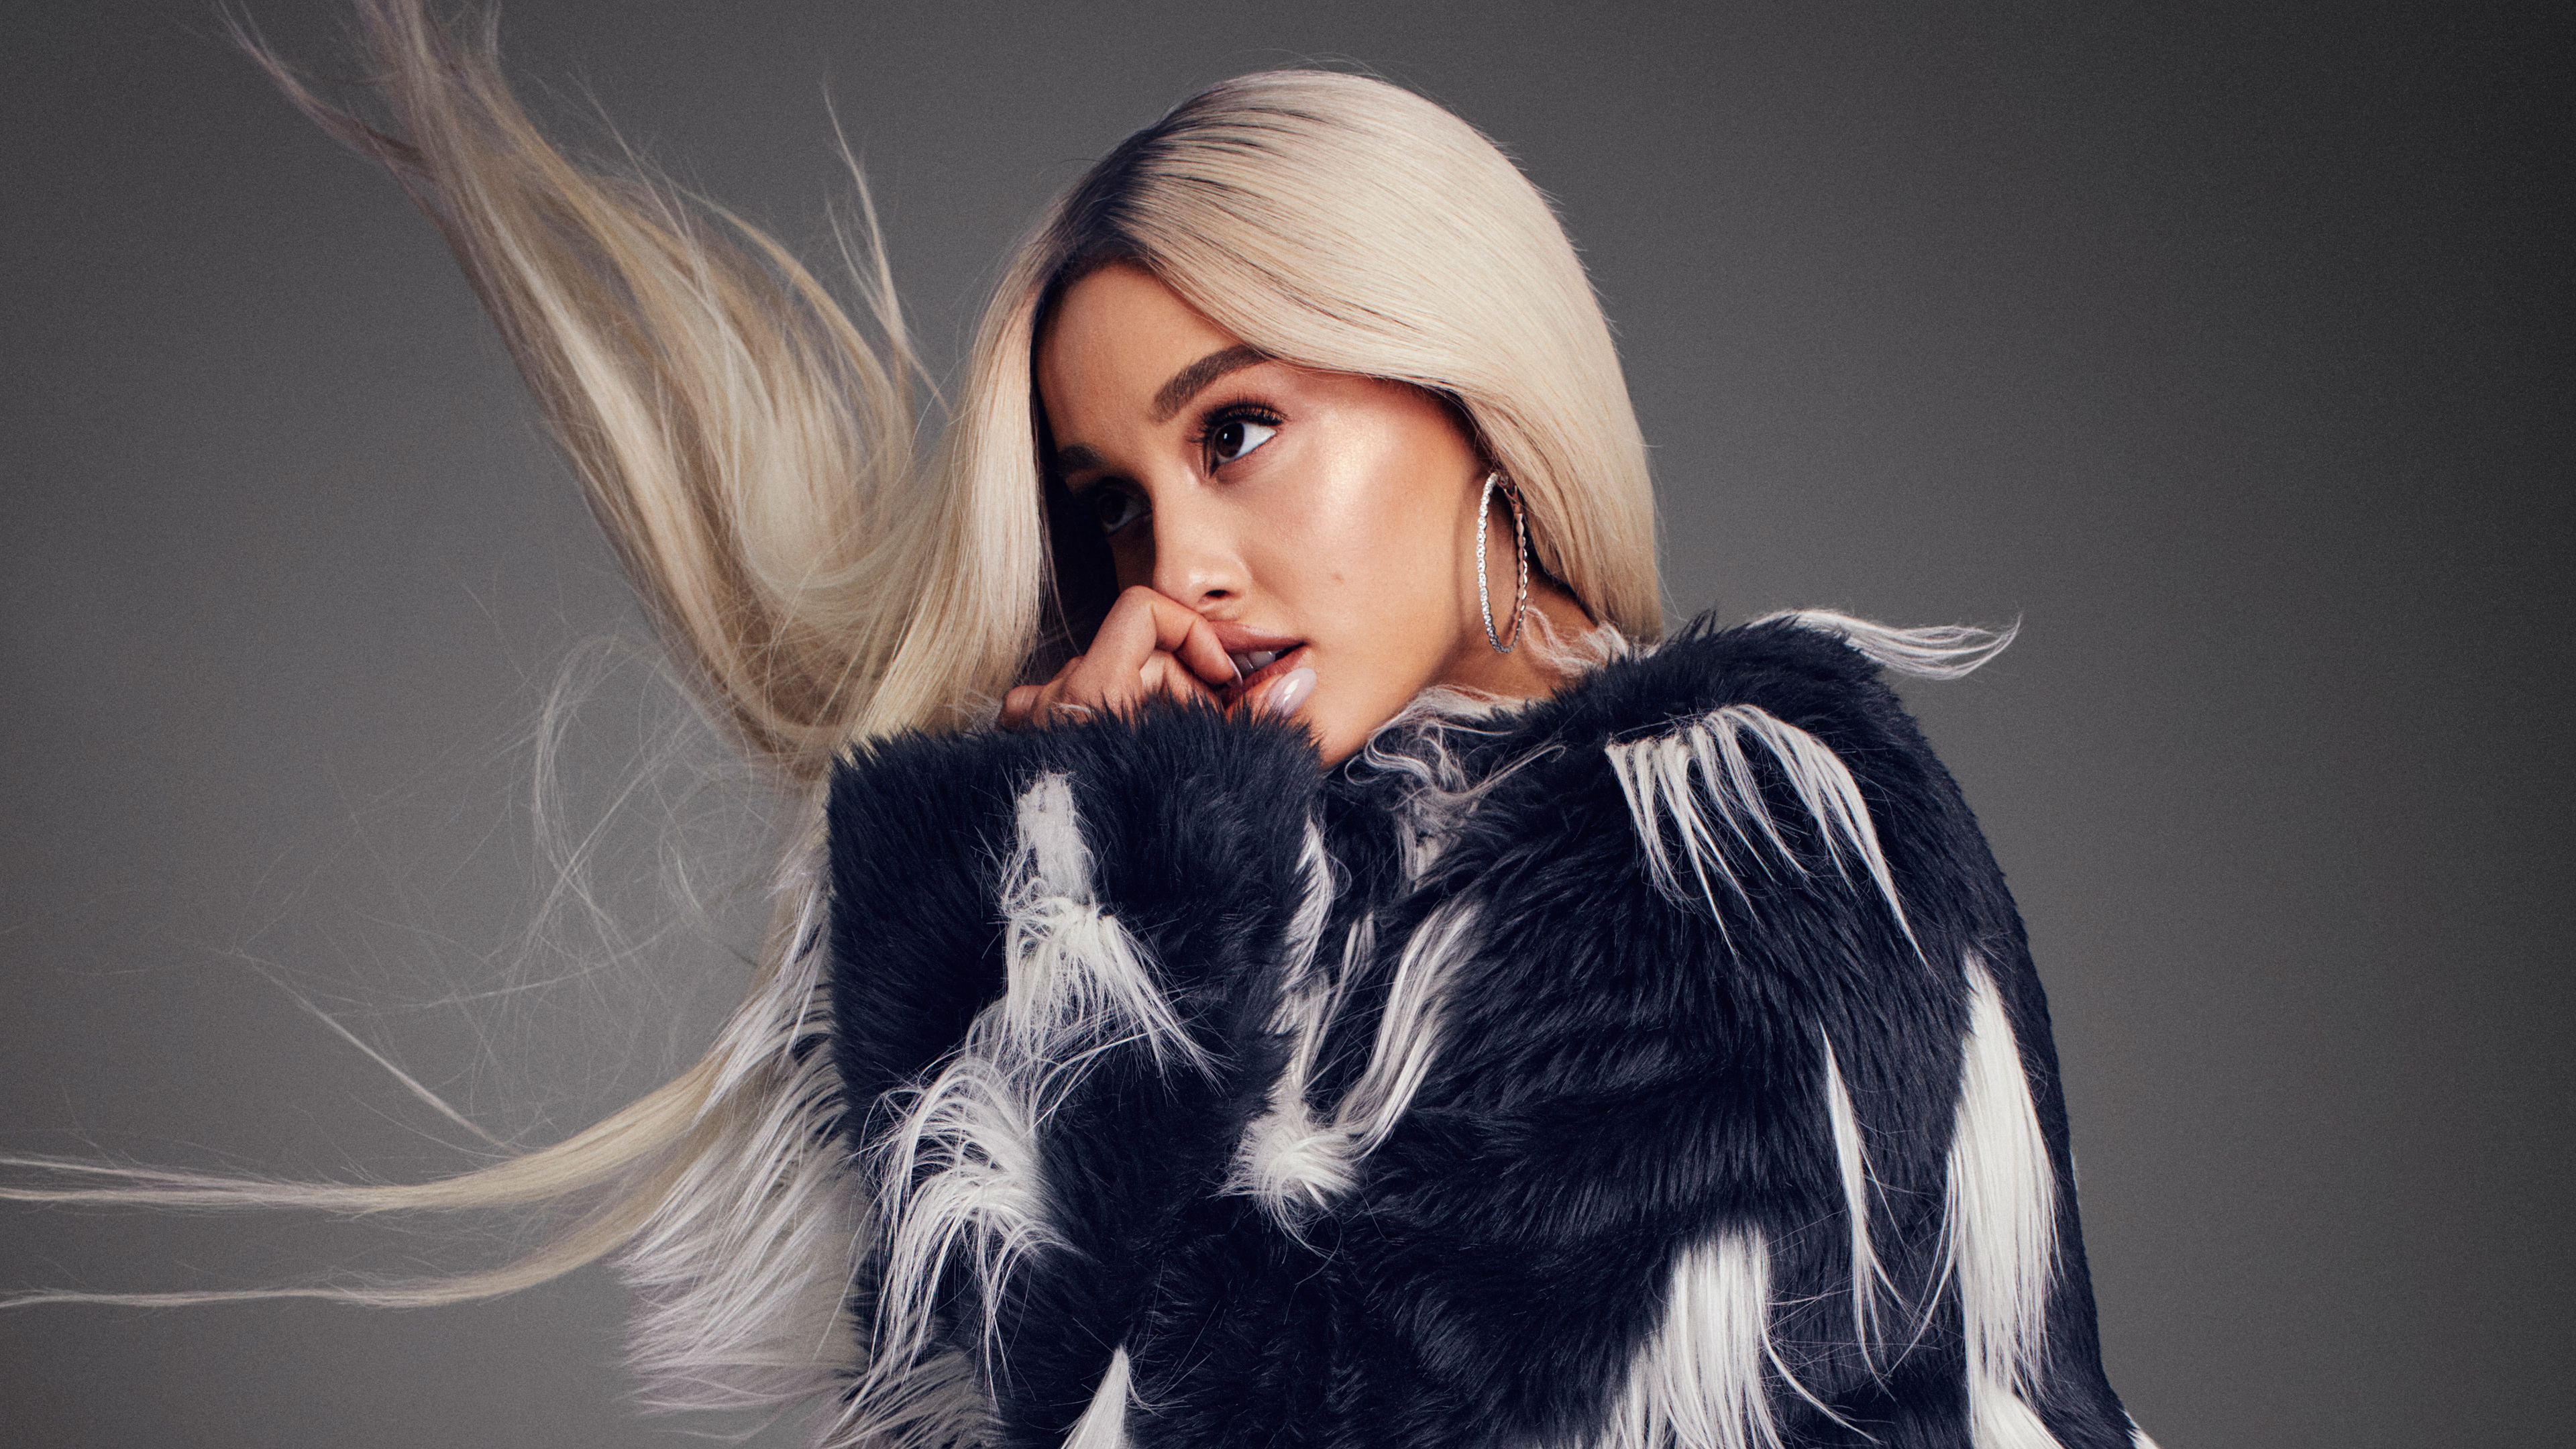 ariana grande elle 2019 5k 1536949871 - Ariana Grande Elle 2019 5k - singer wallpapers, music wallpapers, hd-wallpapers, girls wallpapers, celebrities wallpapers, ariana grande wallpapers, 5k wallpapers, 4k-wallpapers